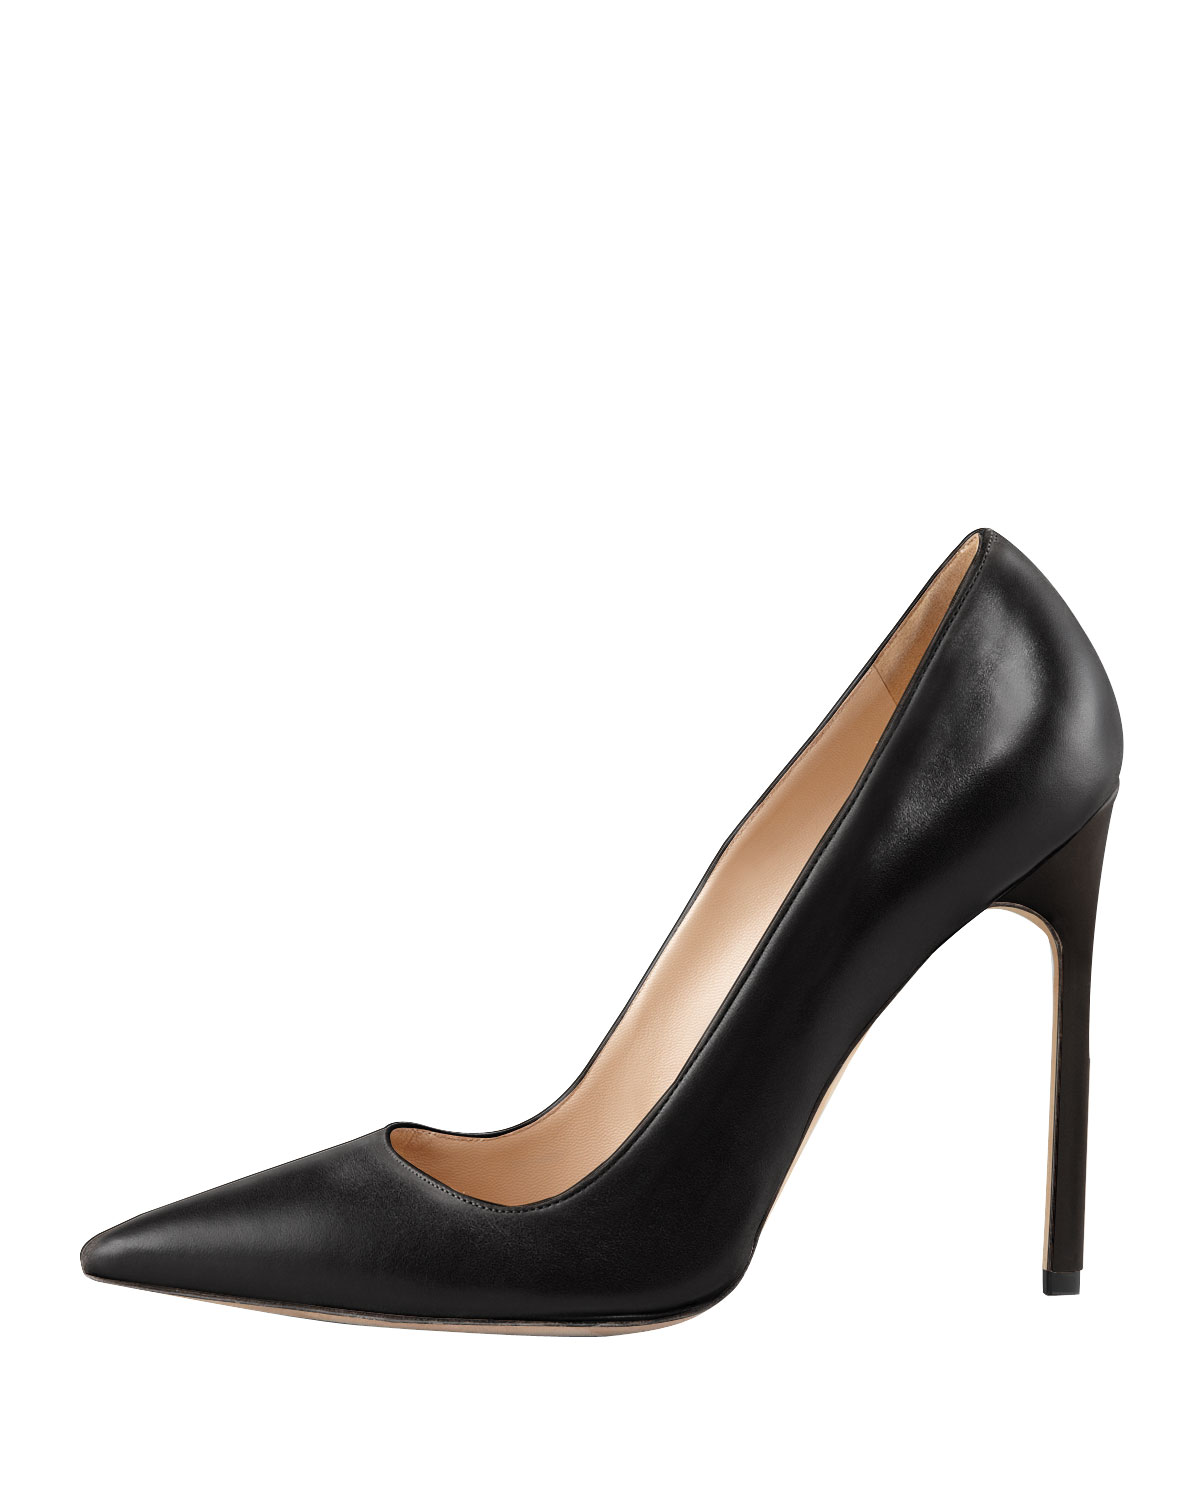 Manolo Blahnik BB Leather 115mm Pump, Black (Made to Order)